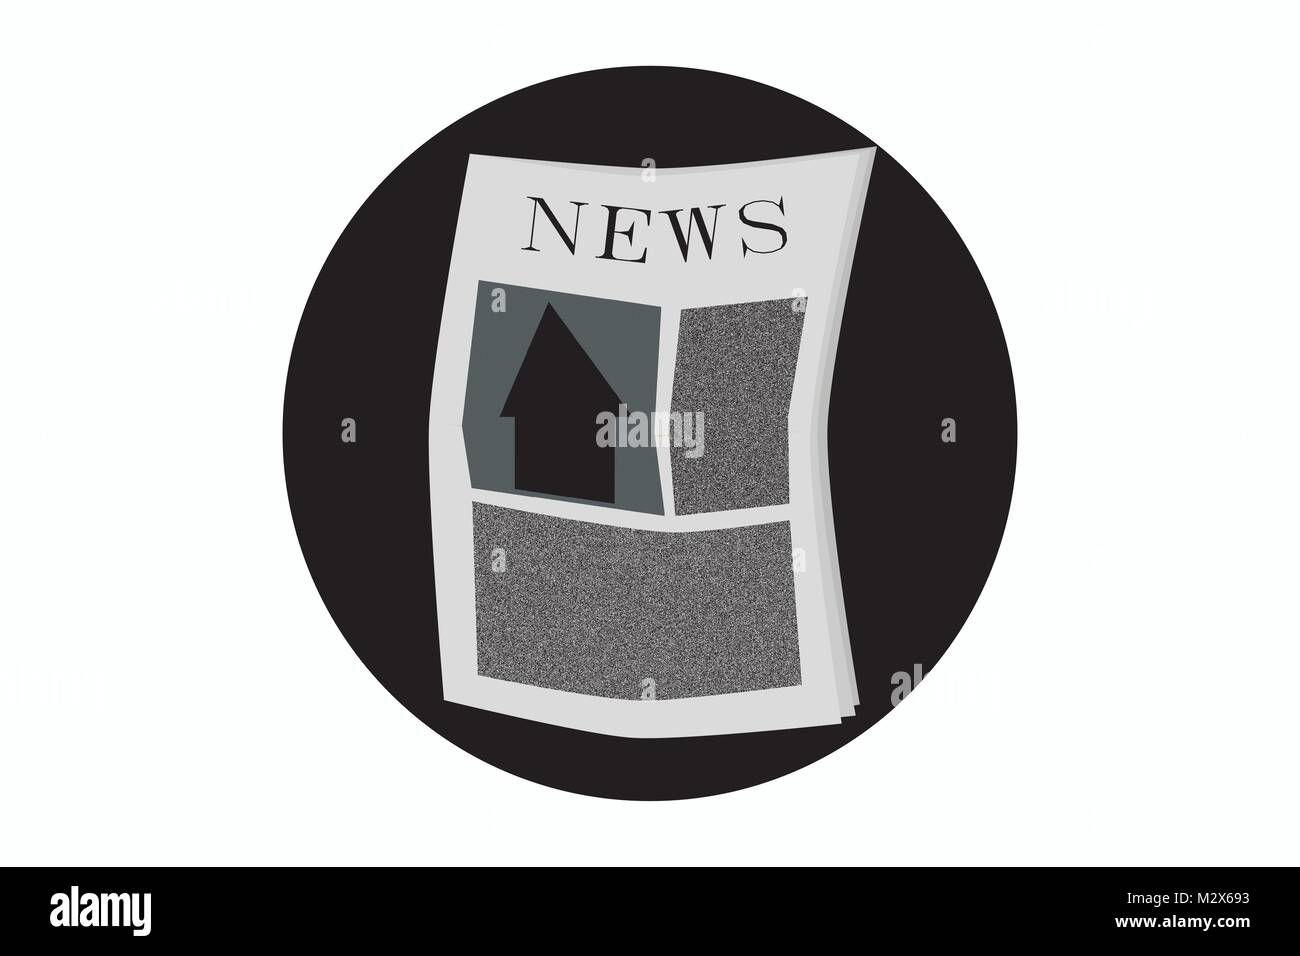 News icon, newspaper symbol, vector of printed edition of newspaper, illustration of regional daily/ politics section/ - Stock Image